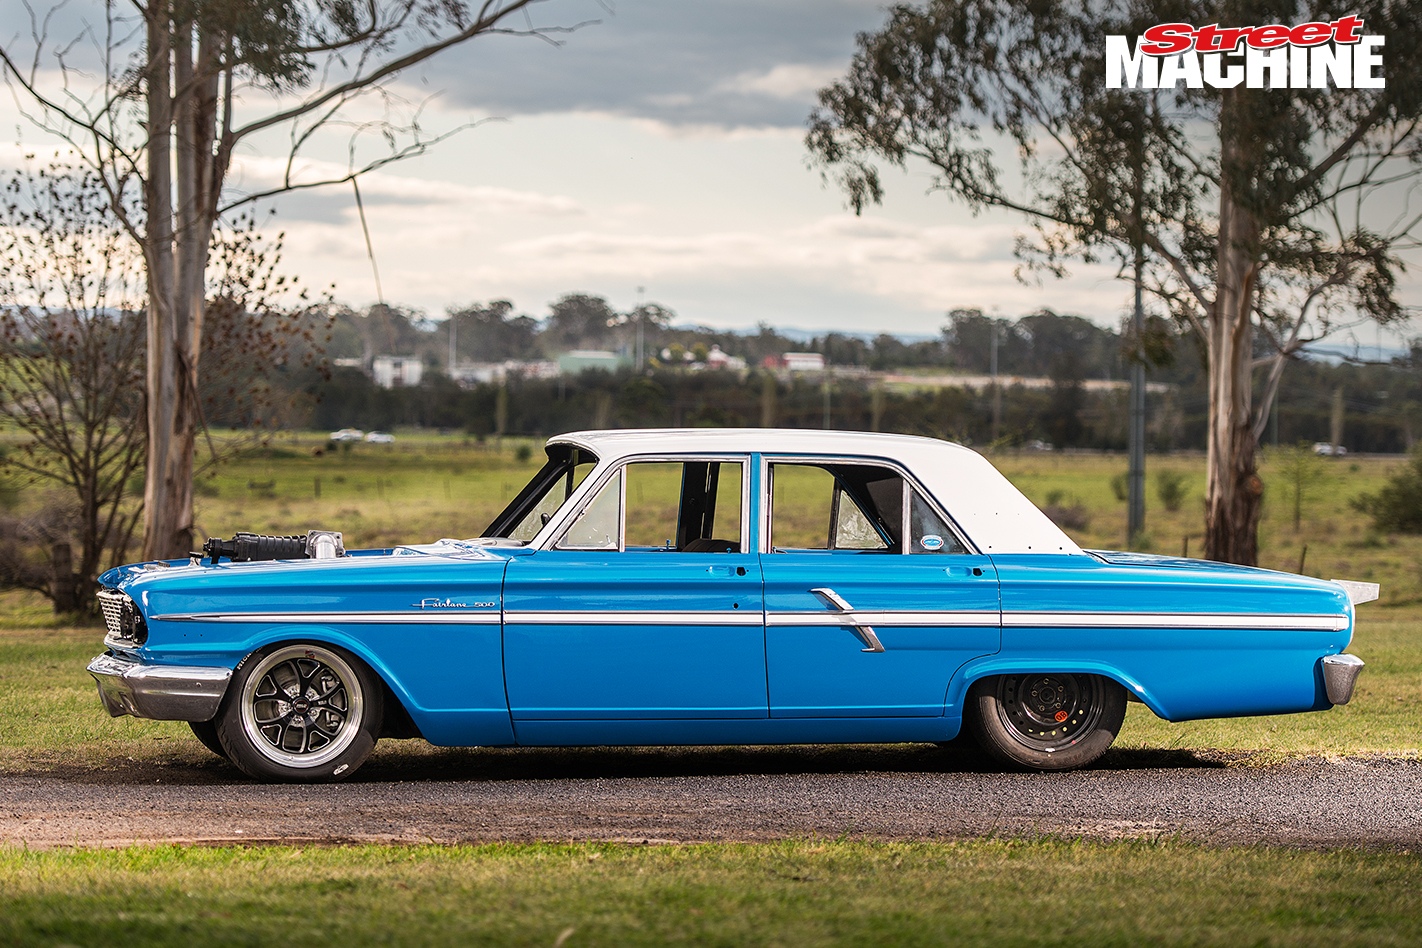 Ford Compact Fairlane V8 6